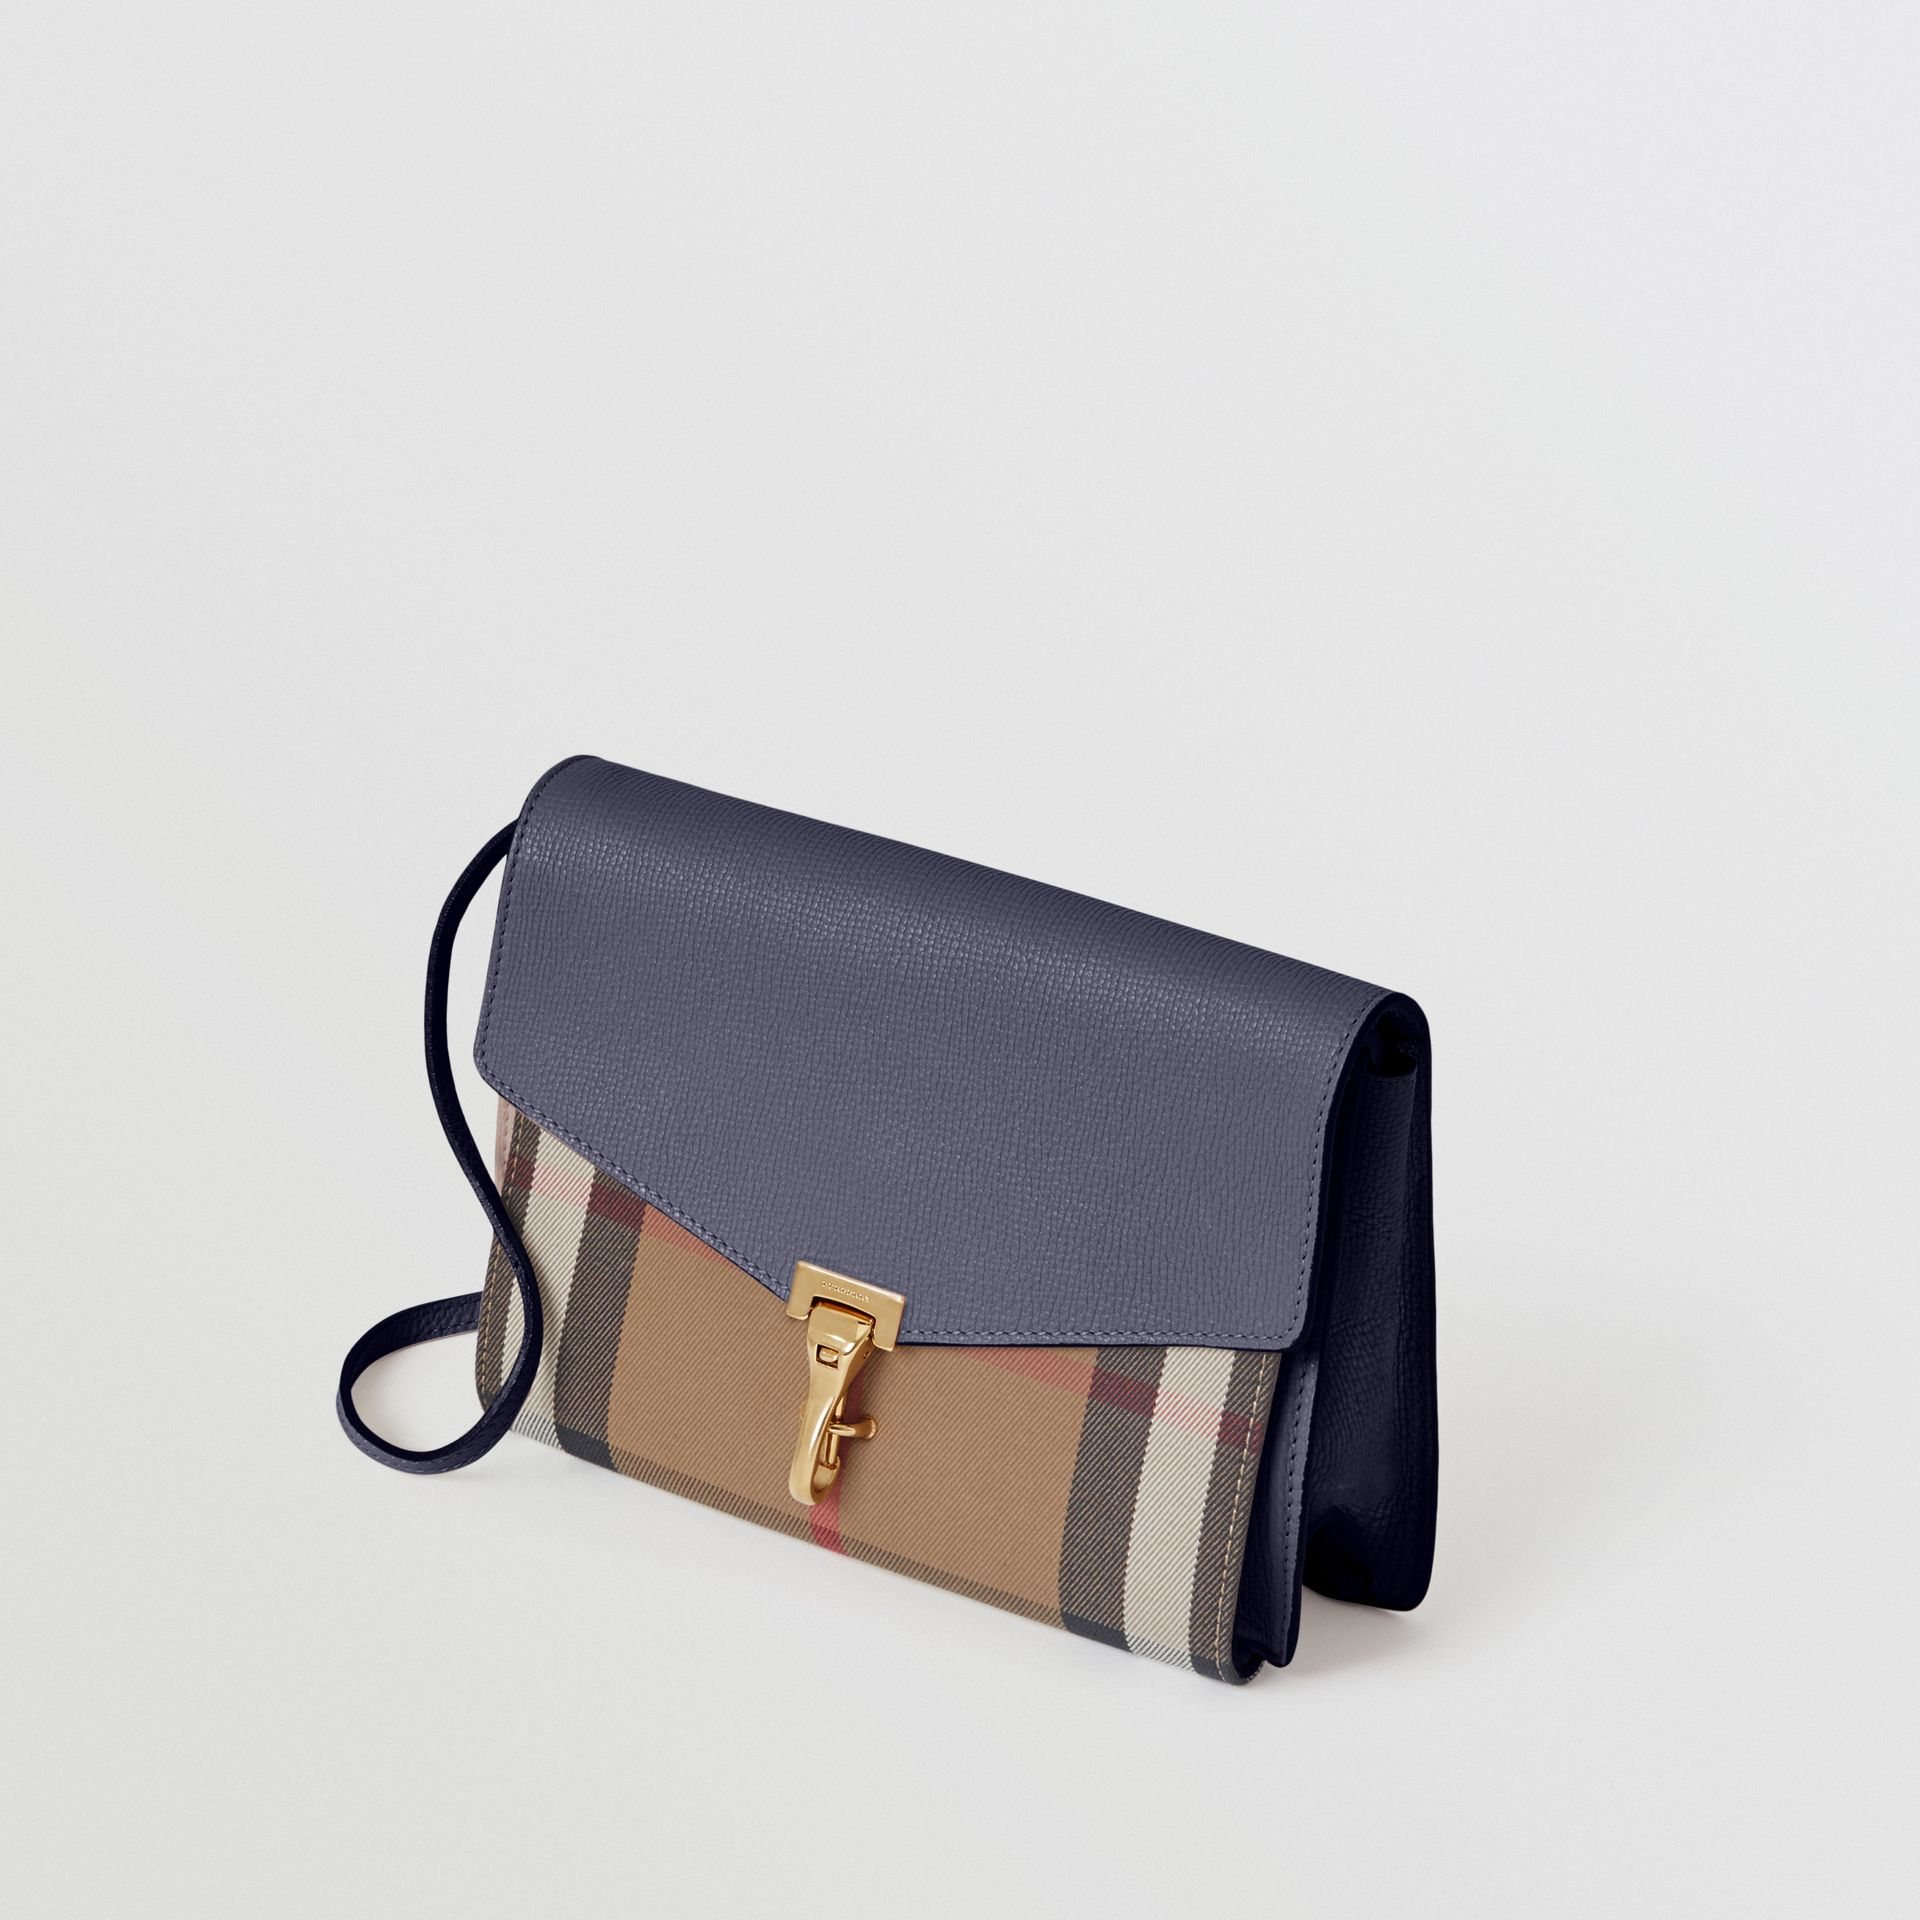 Small Leather and House Check Crossbody Bag in Ink Blue - Women | Burberry United Kingdom - gallery image 4